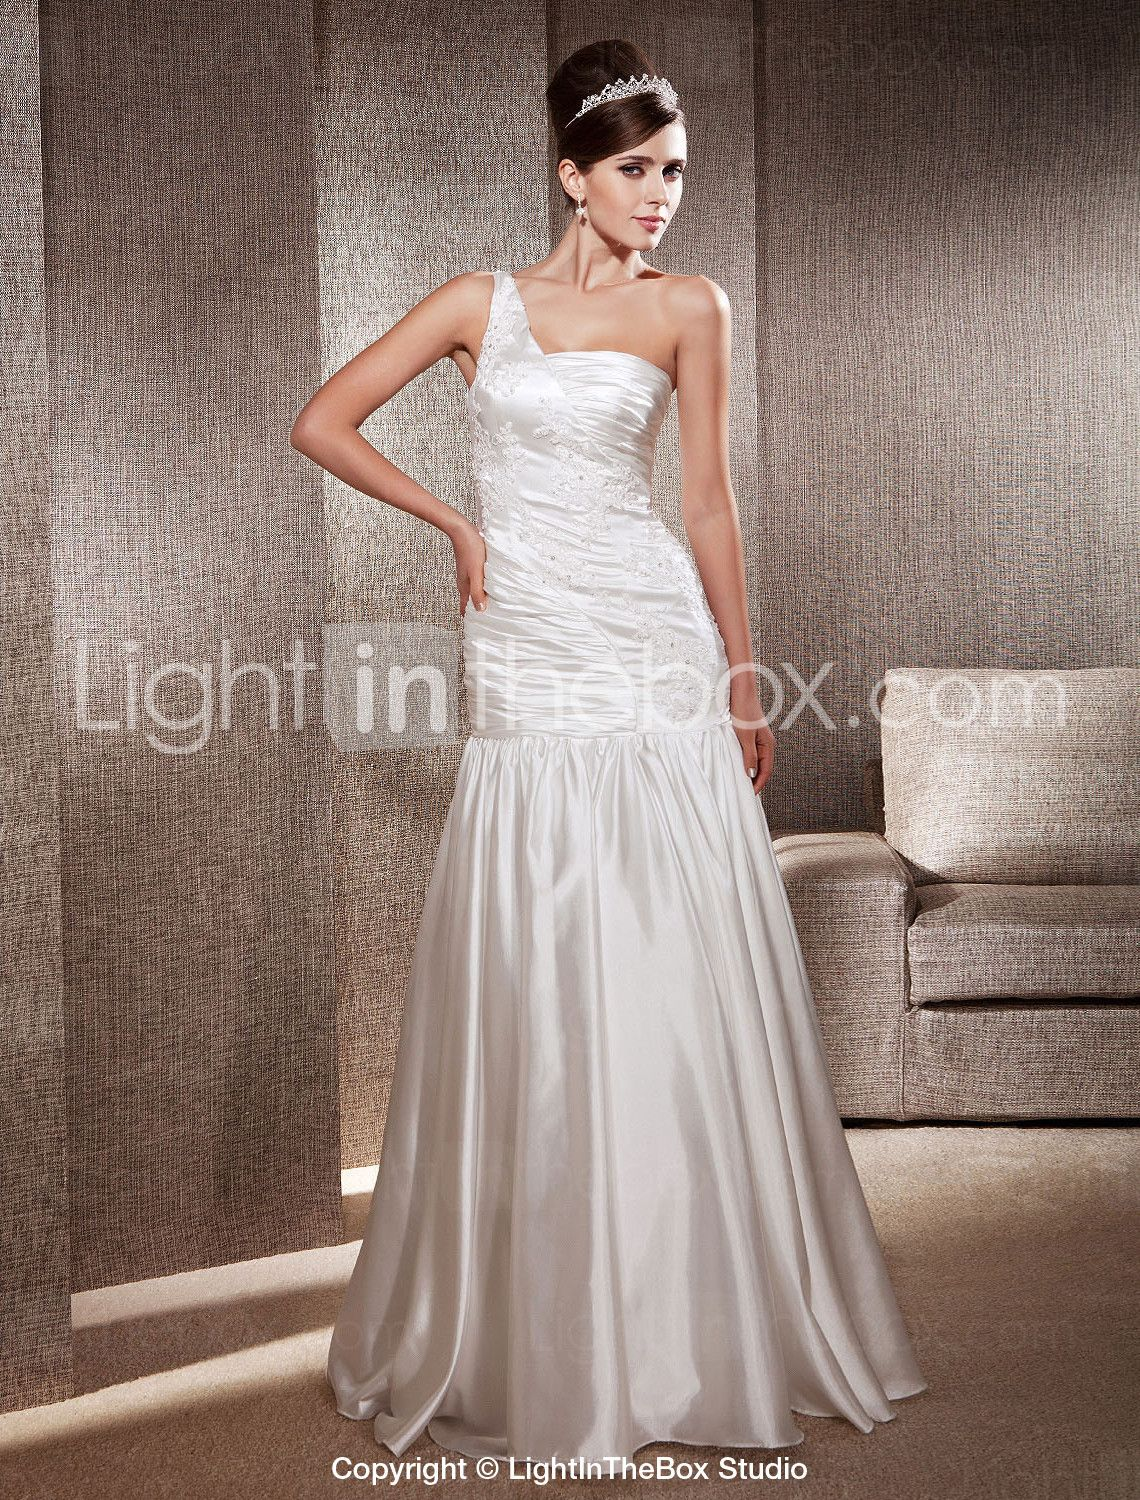 Lightinthebox wedding dresses  TrumpetMermaid One Shoulder Floorlength Elastic Woven Satin